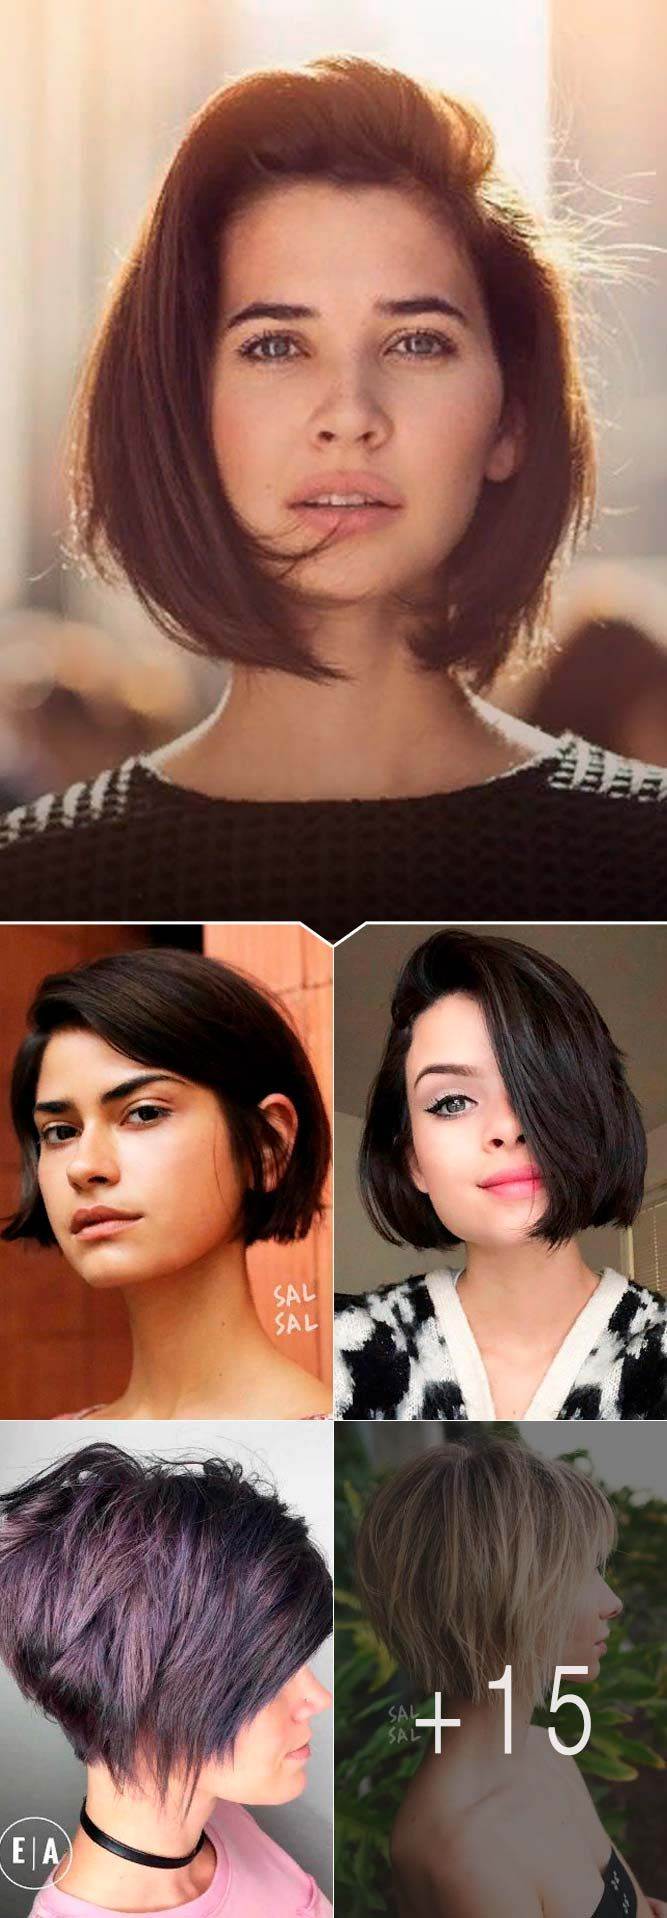 Choose The Right Short Bob Haircuts To Add Some Carefree Vibes To Your Image ★ Short bob haircuts are quite versatile and can compliment almost everyone. Our photo gallery will give you some inspo and help pick your next cut. #glaminati #lifestyle #shortbobhaircuts